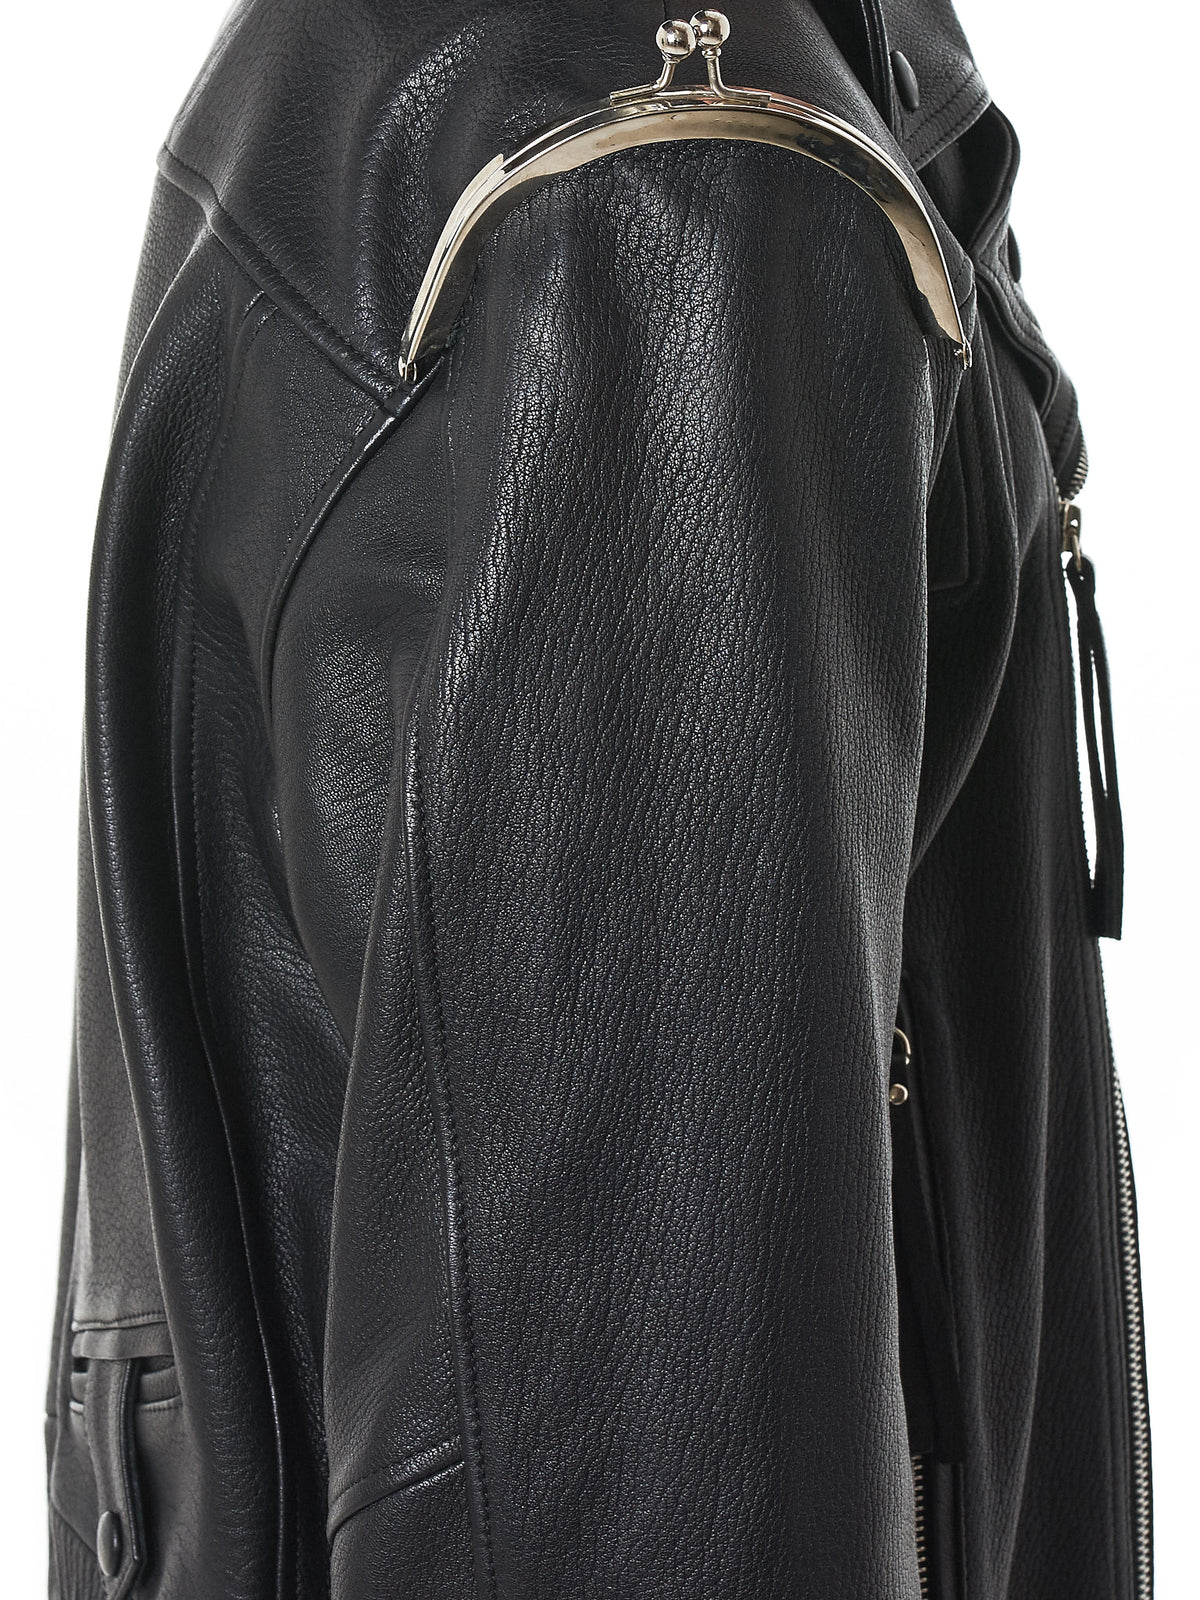 Sanchez-Kane Leather Jacket - Hlorenzo Detail 2